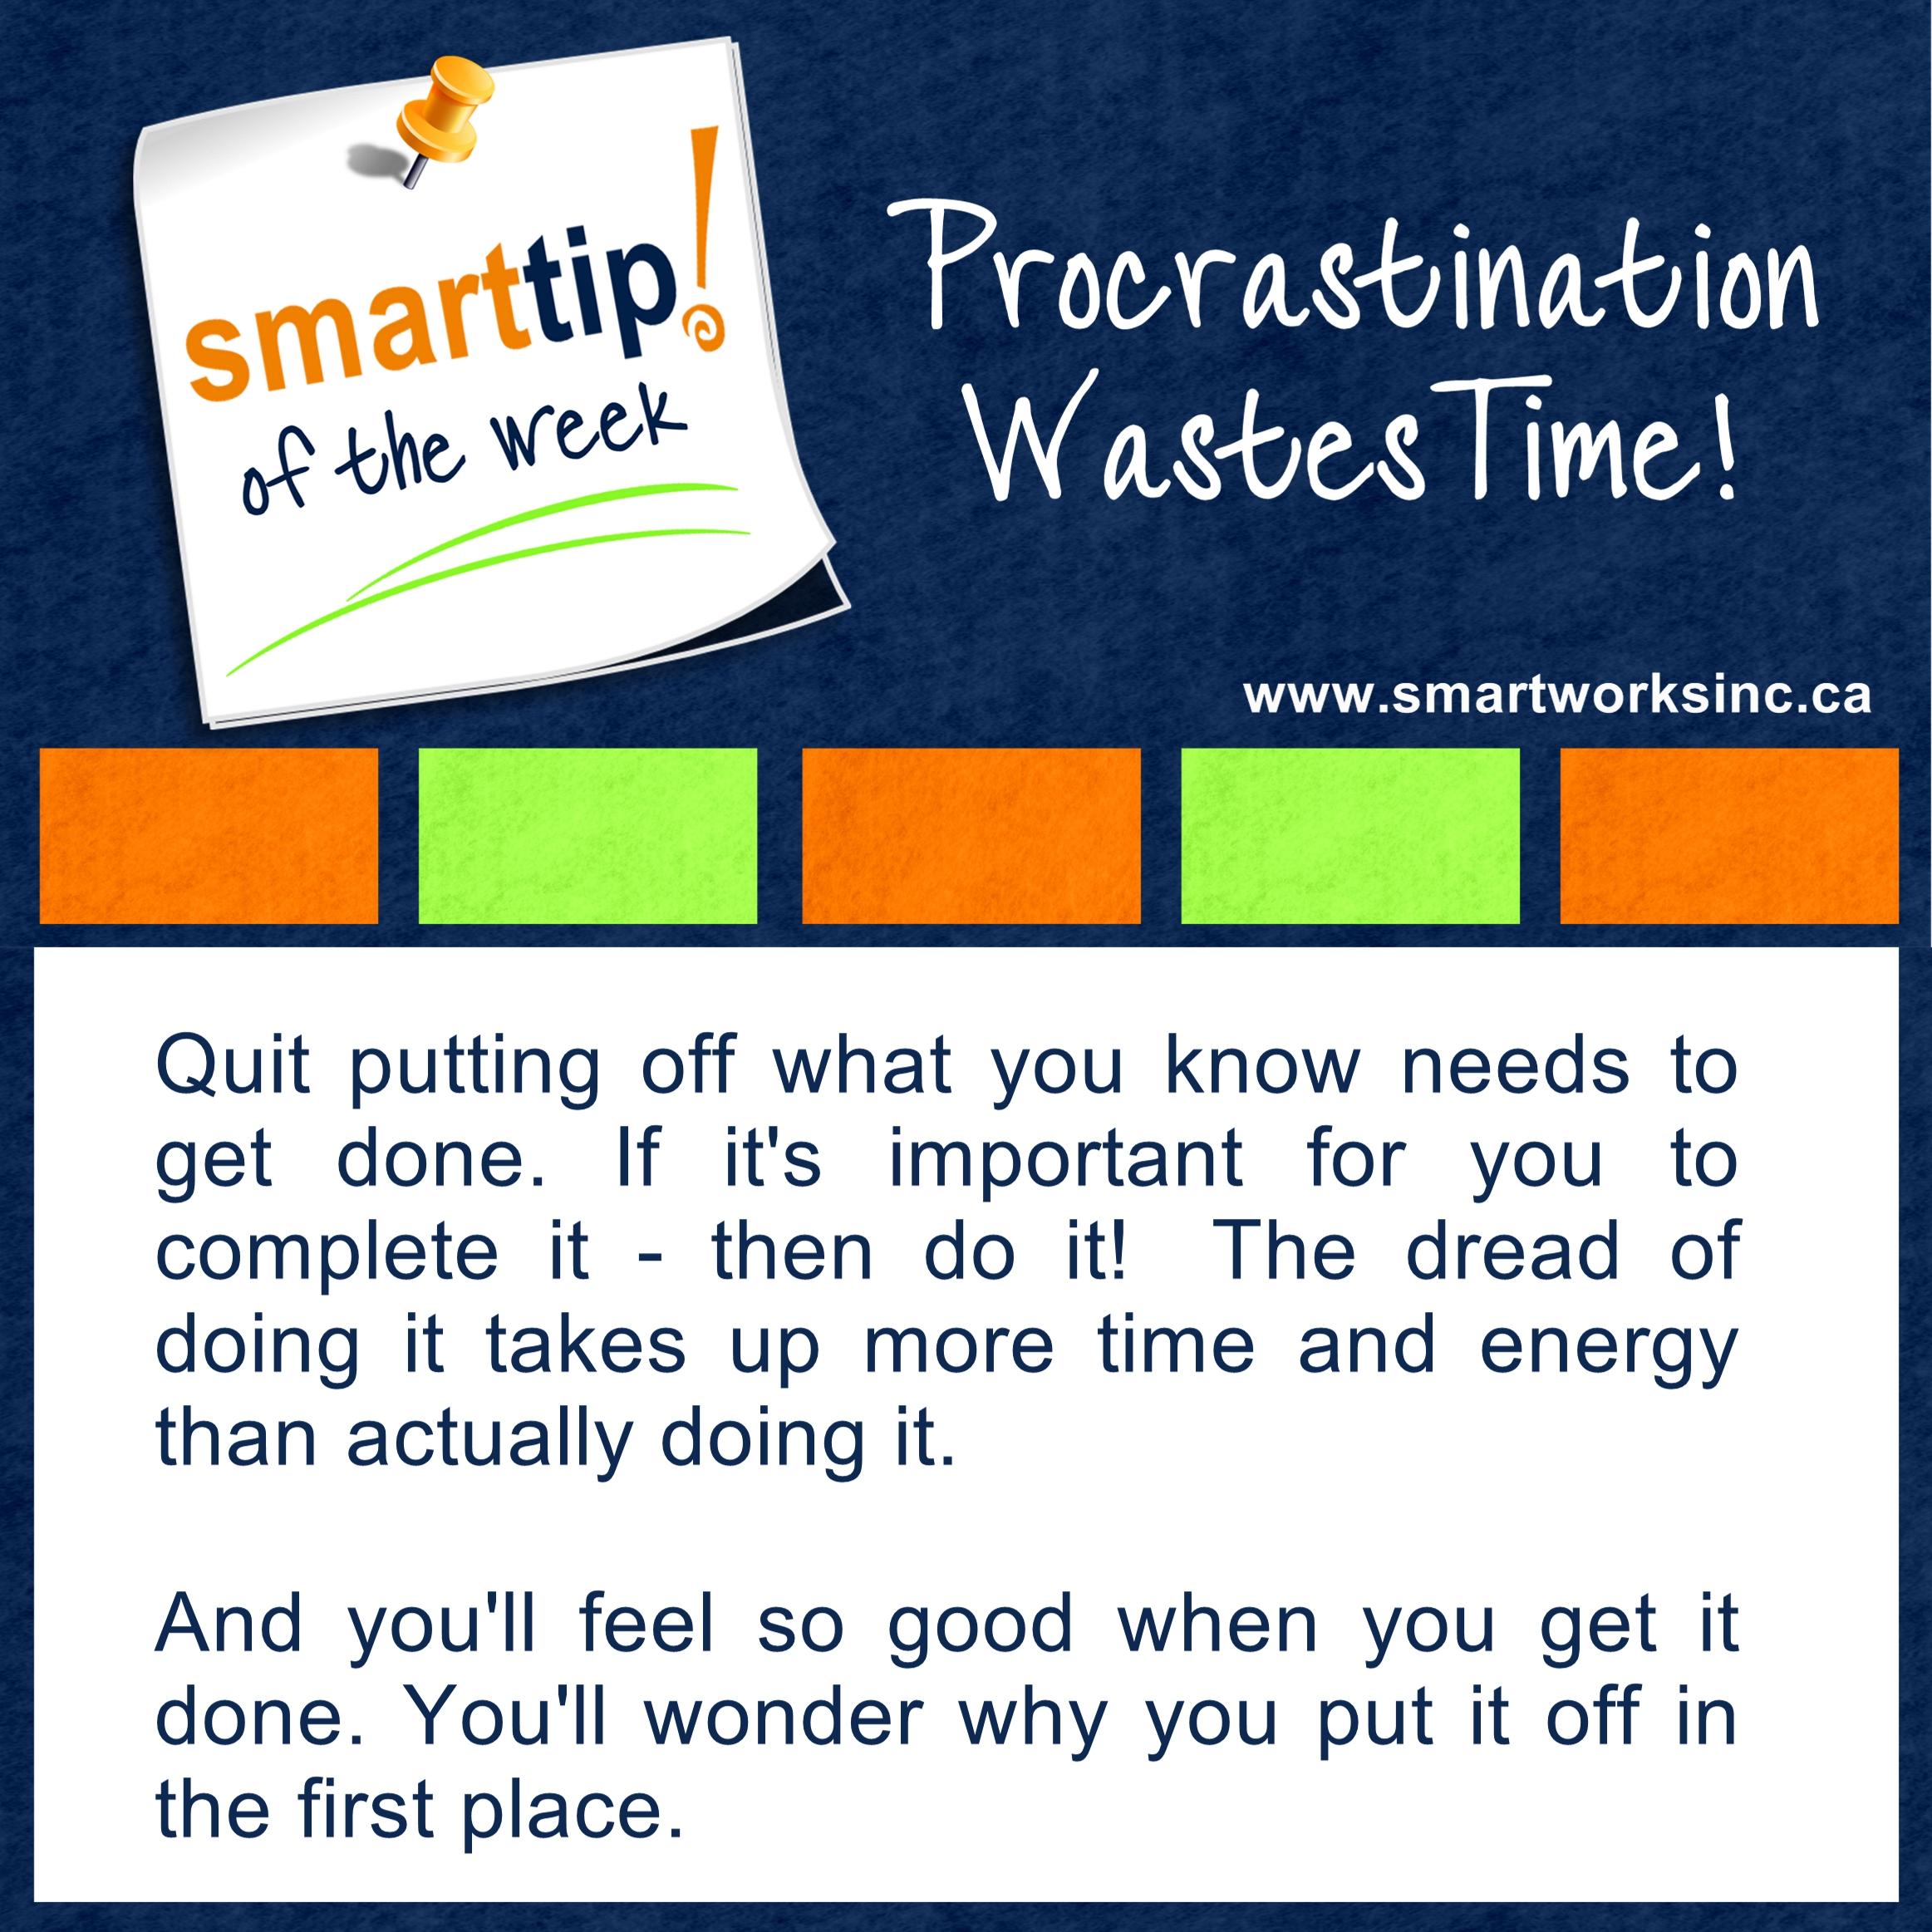 20-procrastination-wastes-time